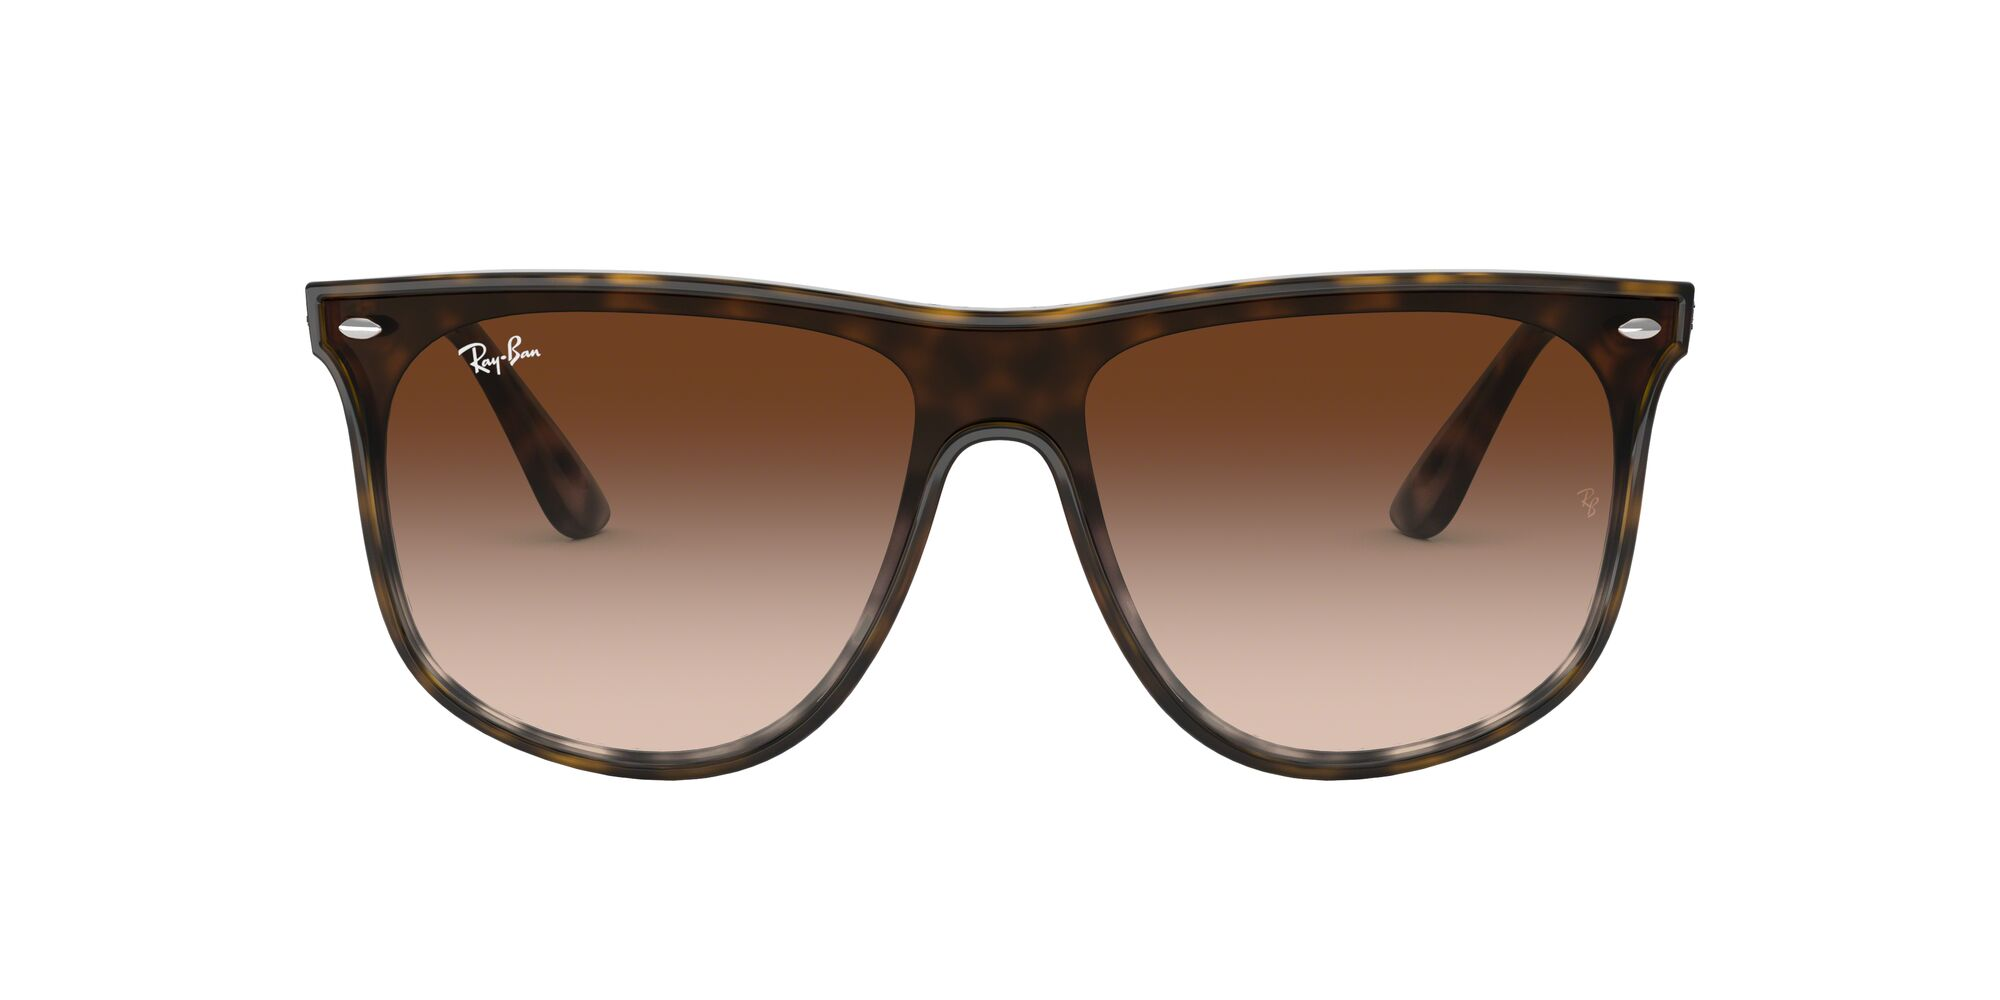 Front Ray-Ban Ray-Ban 0RB4447N 710/13 40/0 Bruin/Bruin